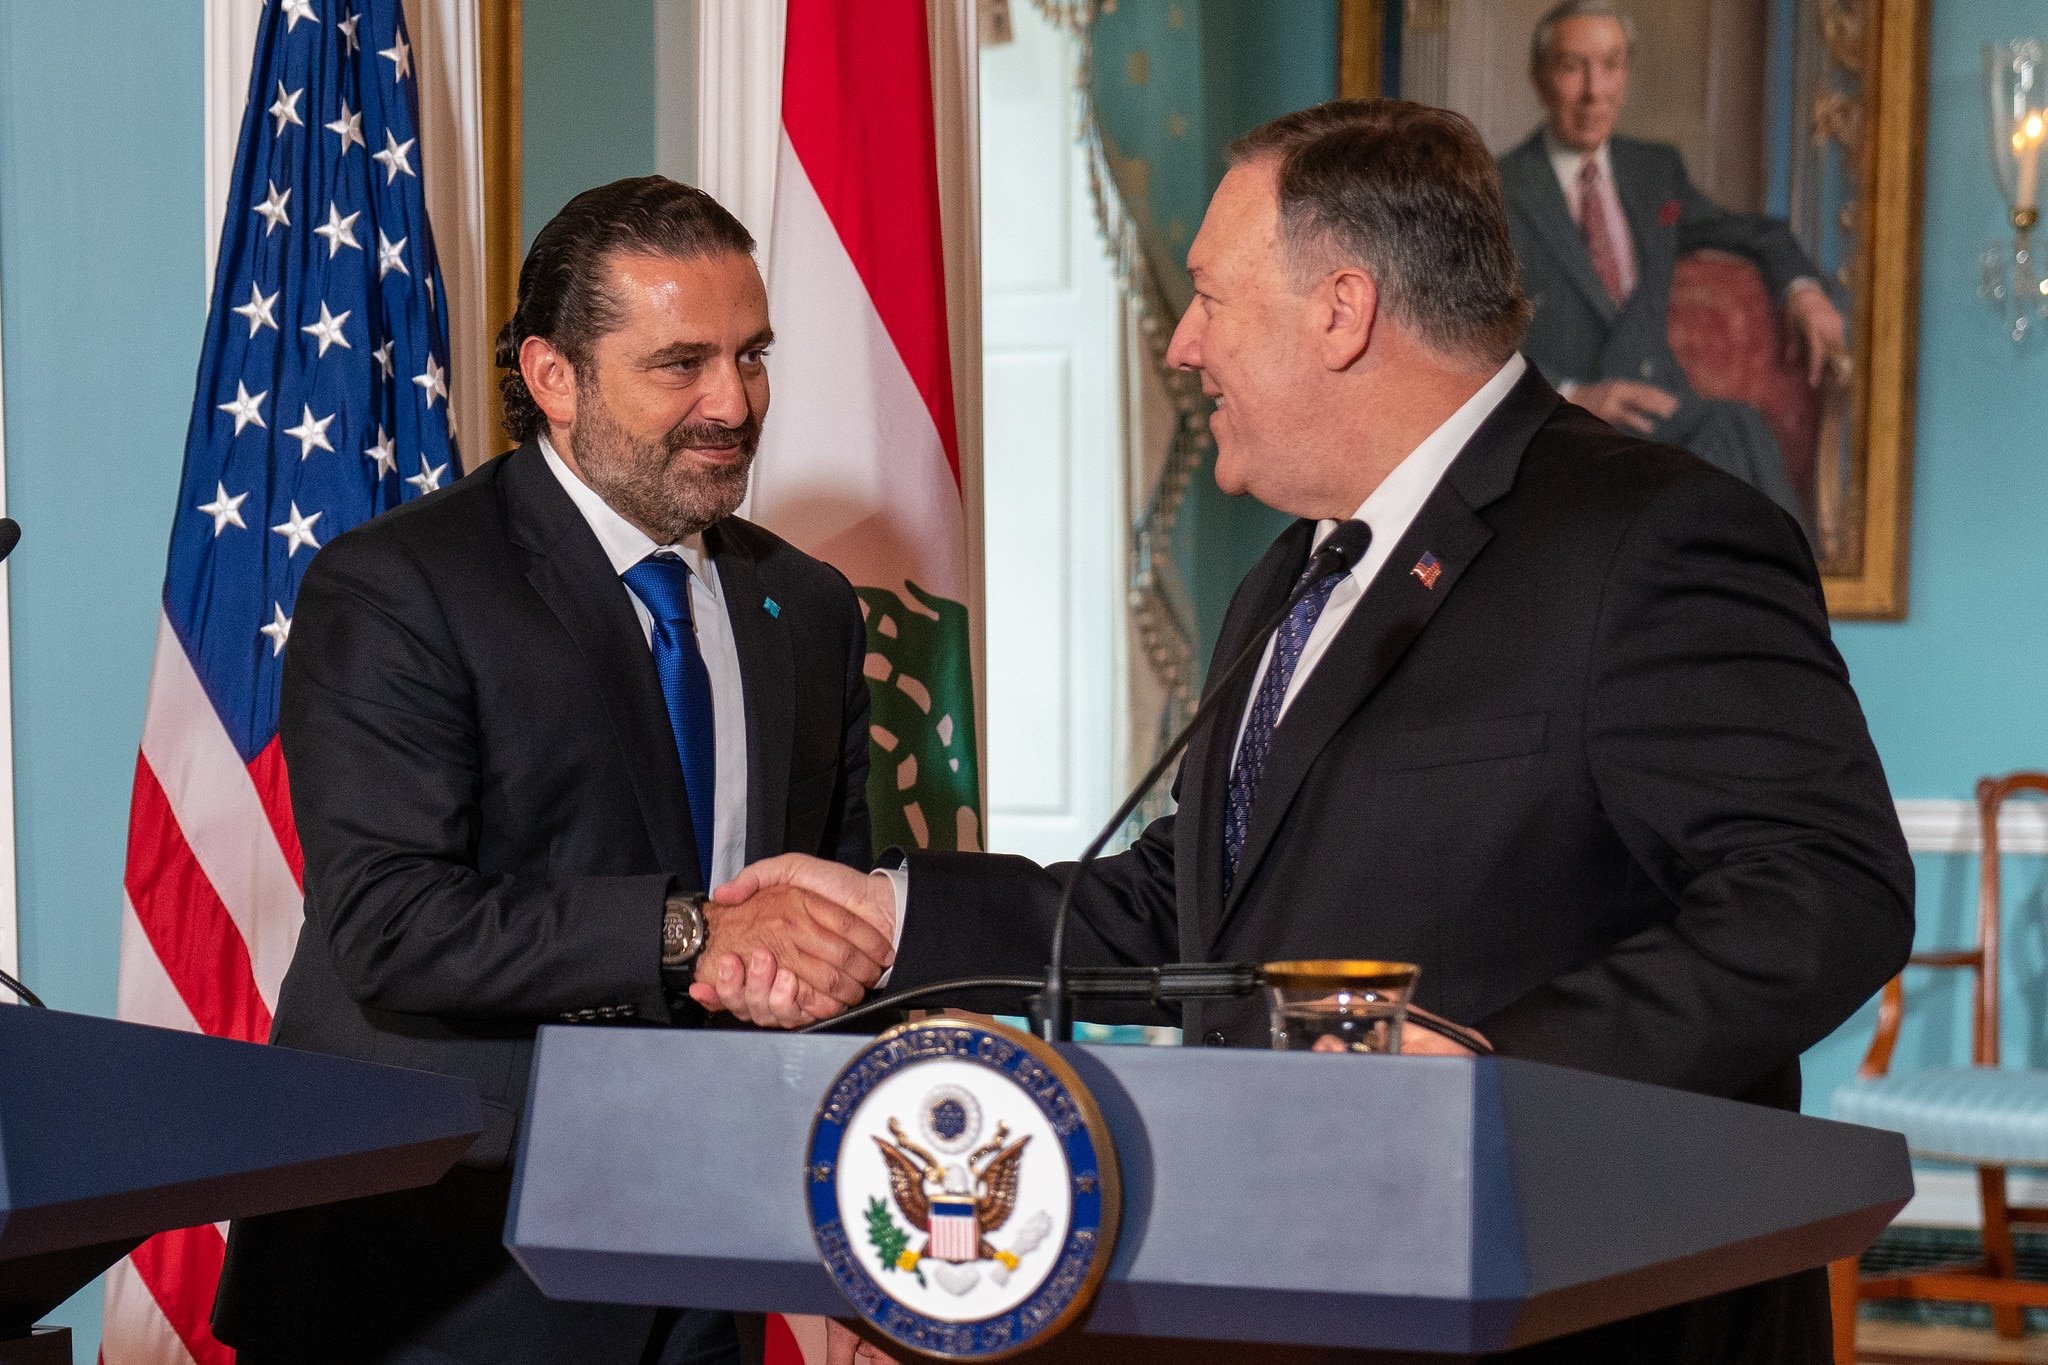 Secretary Pompeo and Lebanese Prime Minister Hariri Deliver Statements to the Press